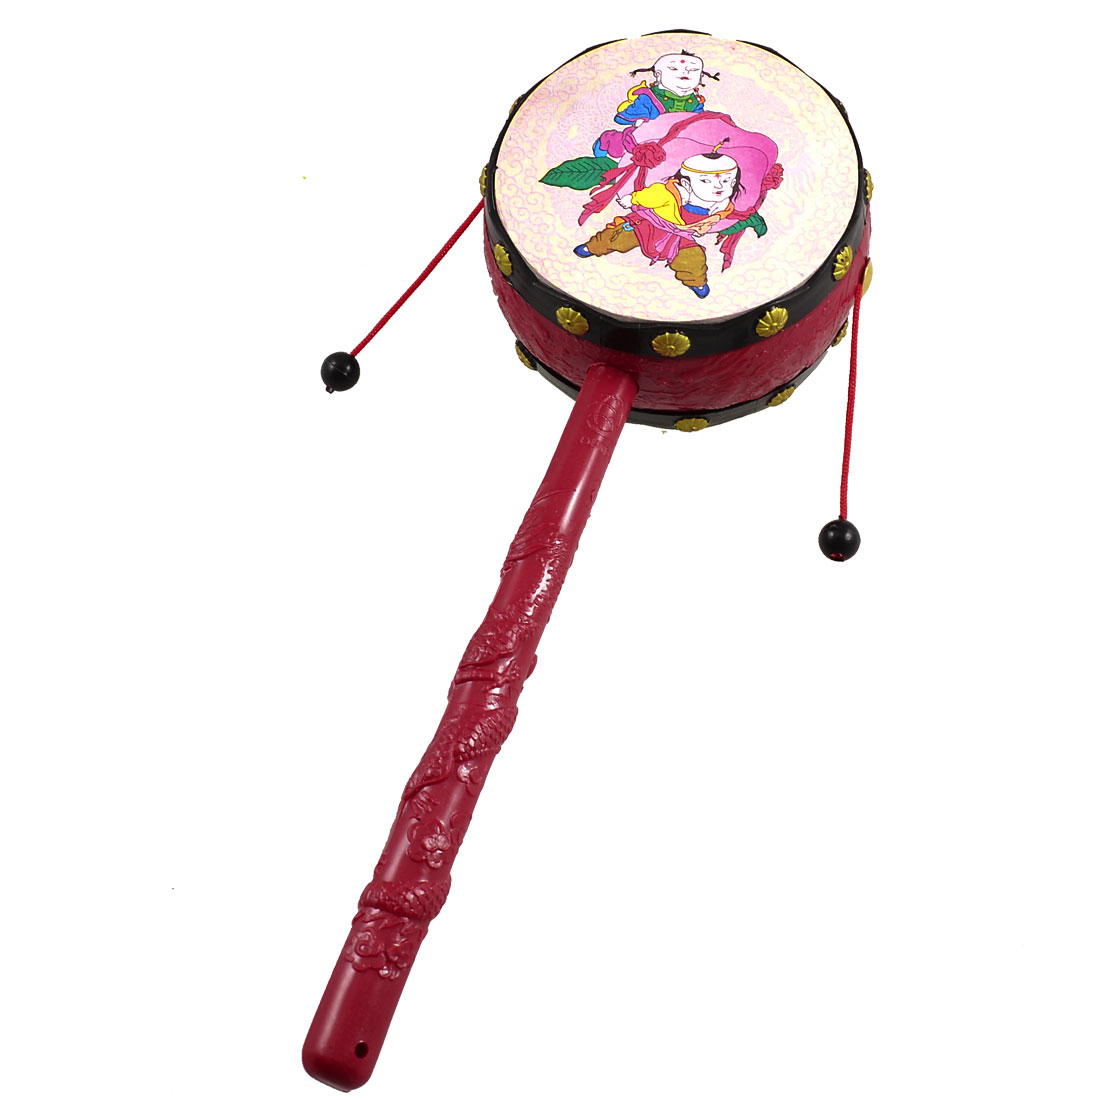 Toddlers Nonslip Plastic Handle Music Instrument Rattle Drum Toy